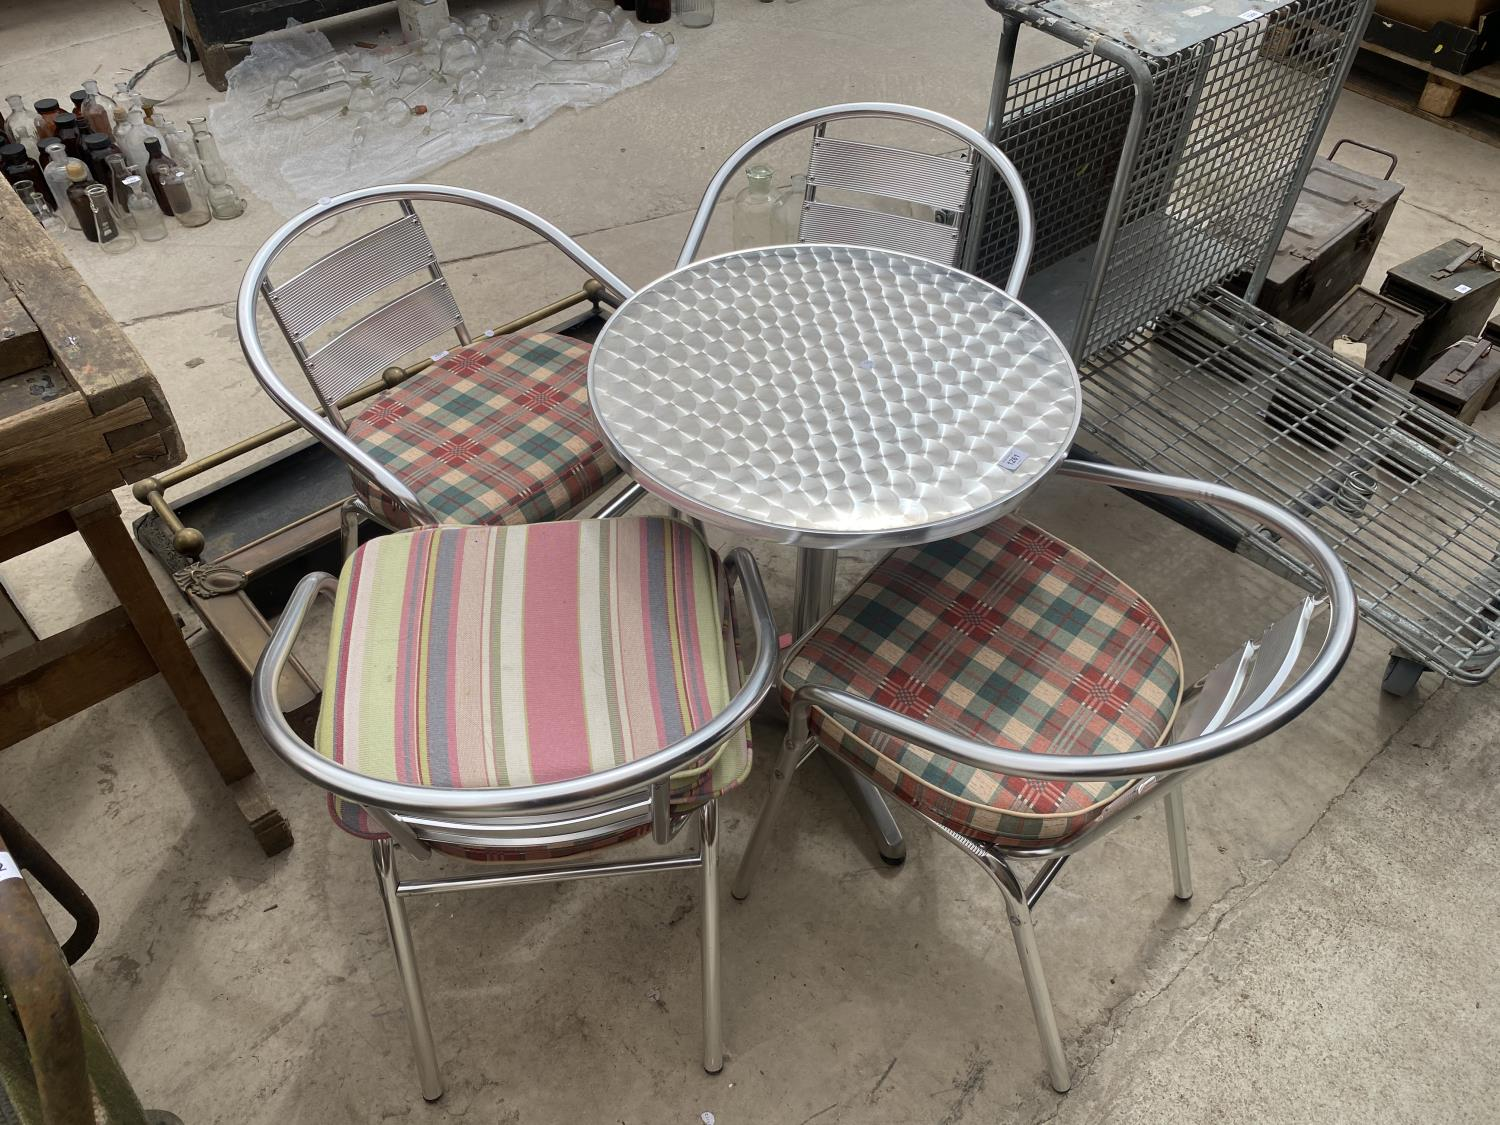 A STAINLESS STEEL BISTRO SET WITH ROUND TABLE AND FOUR CHAIRS